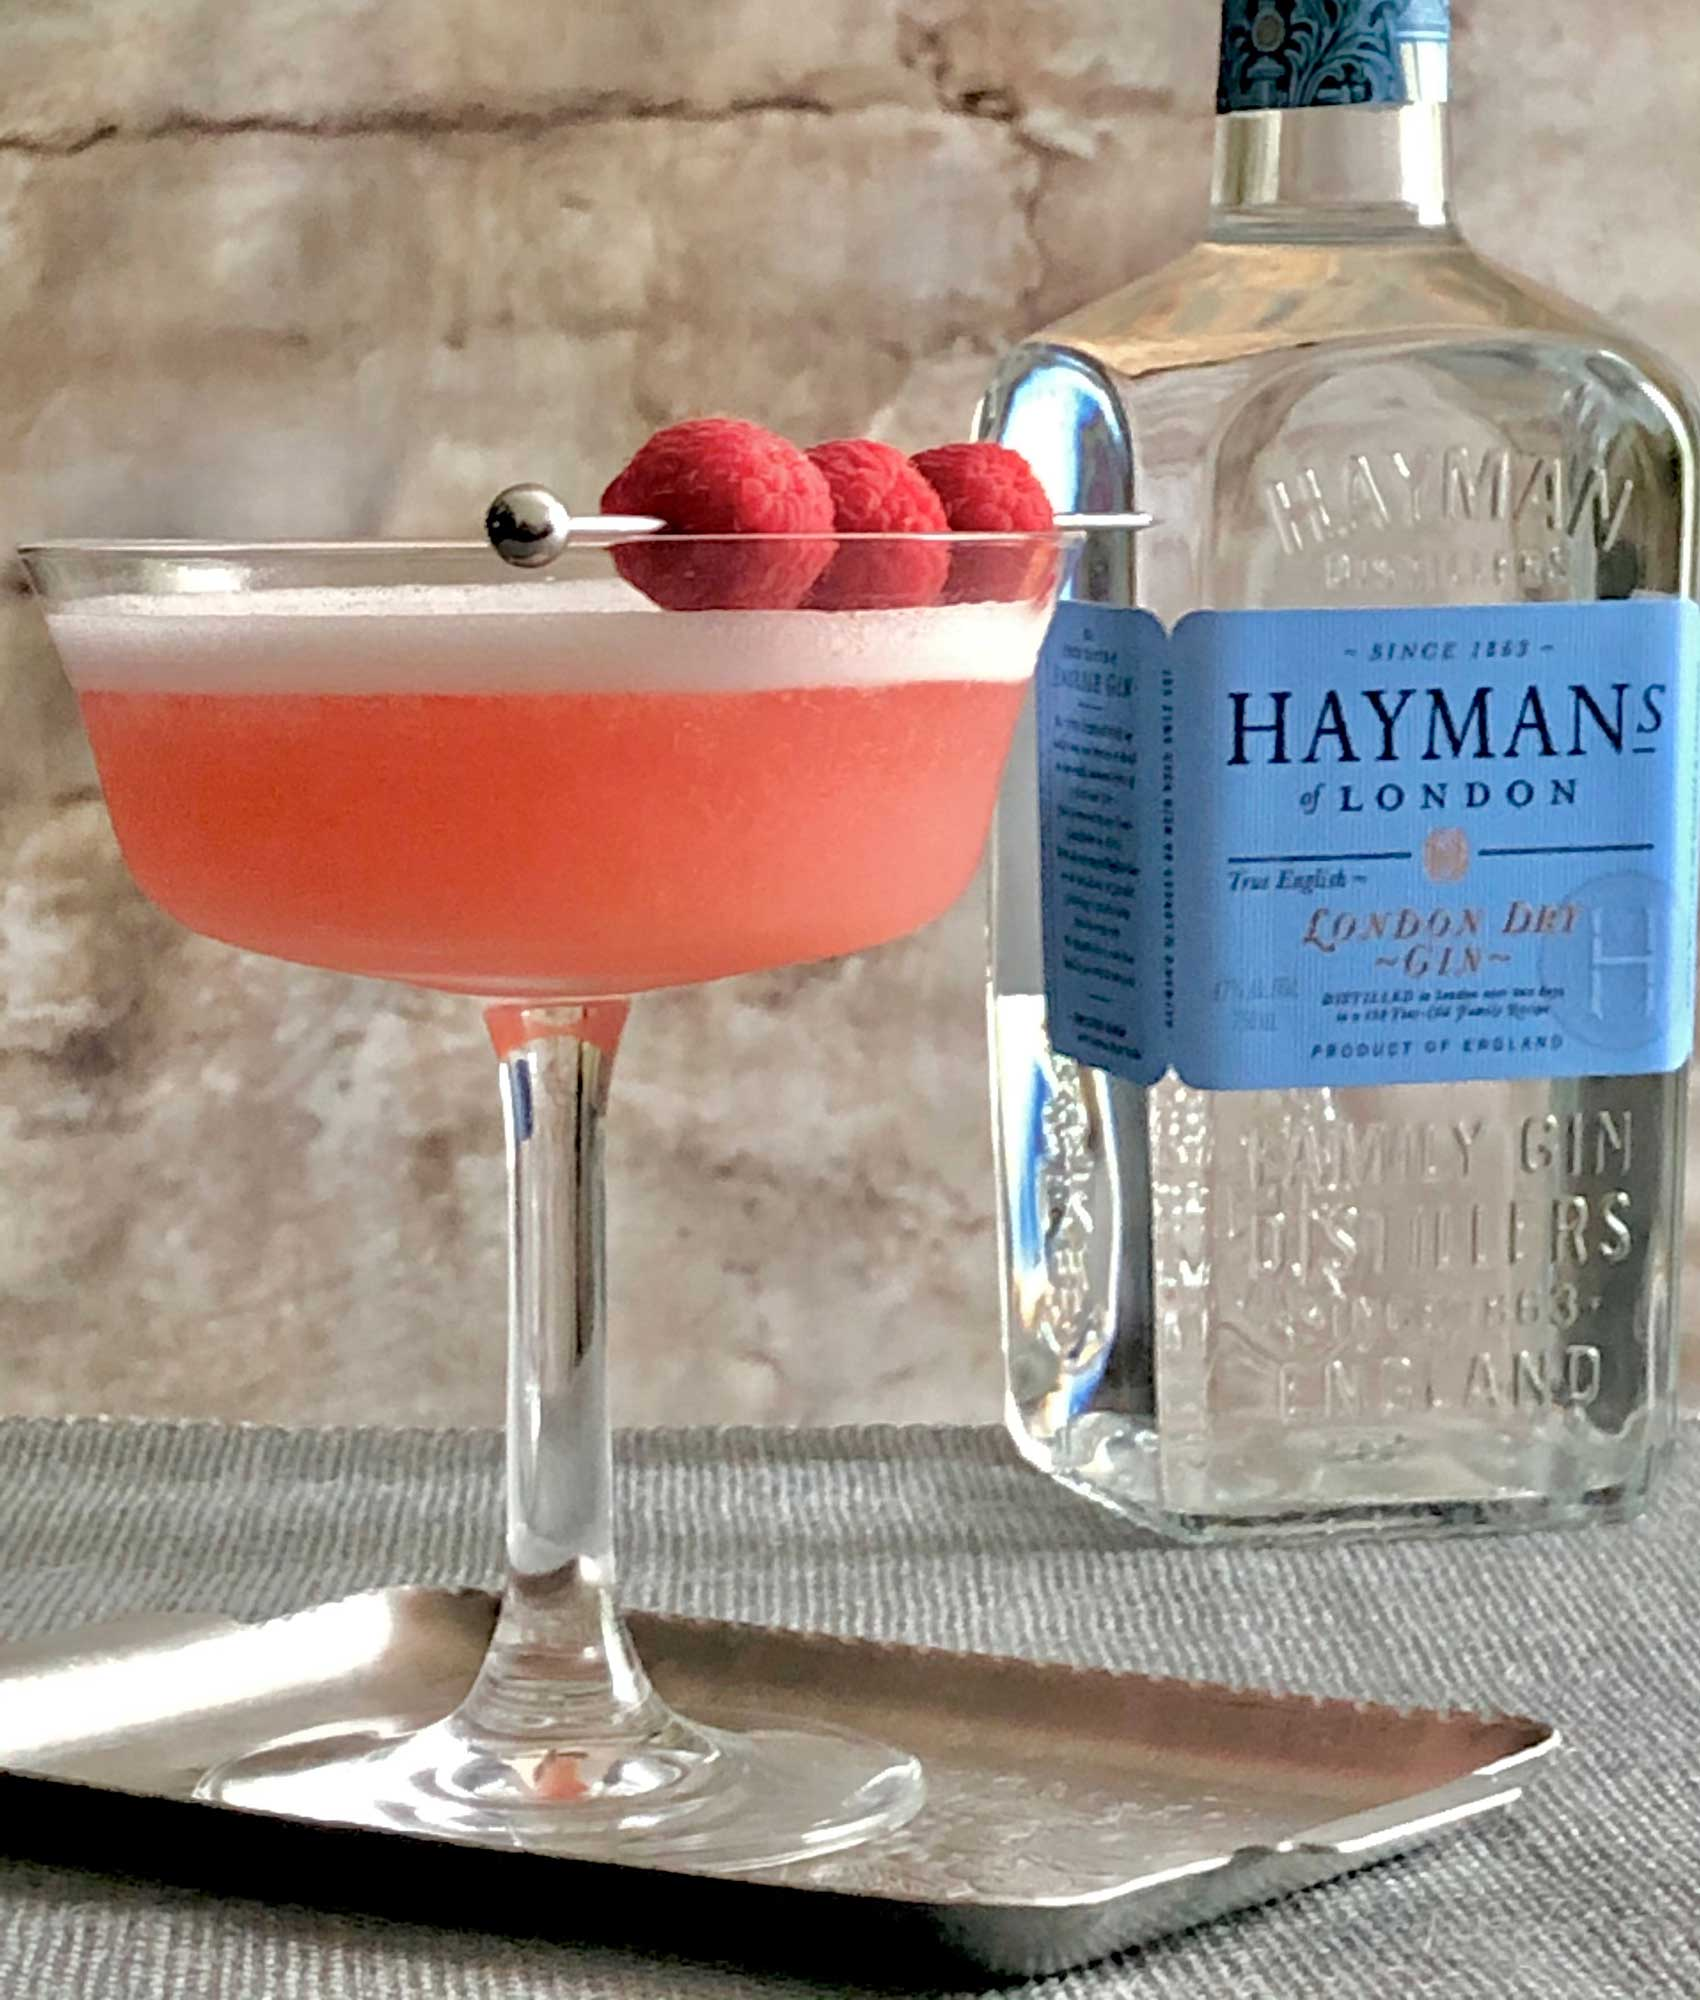 An example of the Clover Club, the mixed drink (cocktail), Adapted by Julie Reiner, NYC, featuring Hayman's London Dry Gin, egg white, lemon juice, Dolin Dry Vermouth de Chambéry, and raspberry syrup; photo by Lee Edwards